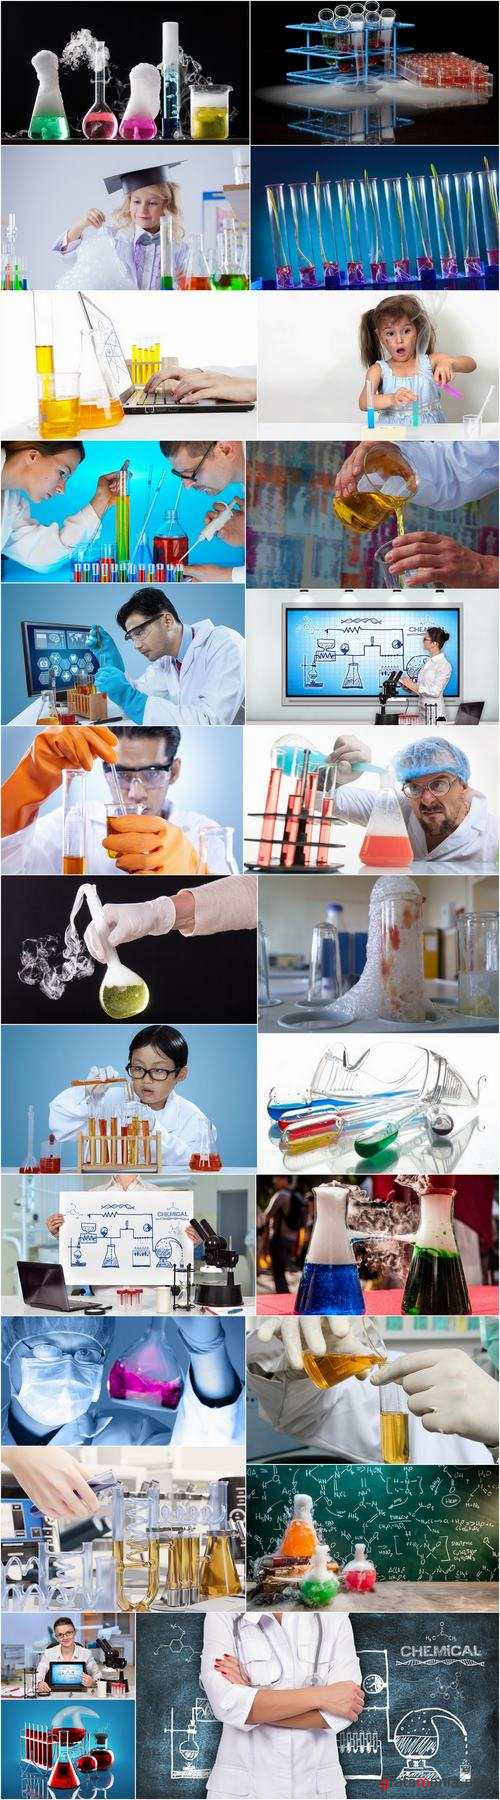 Chemist chemical reaction laboratory glassware chemical reagent 25 HQ Jpeg